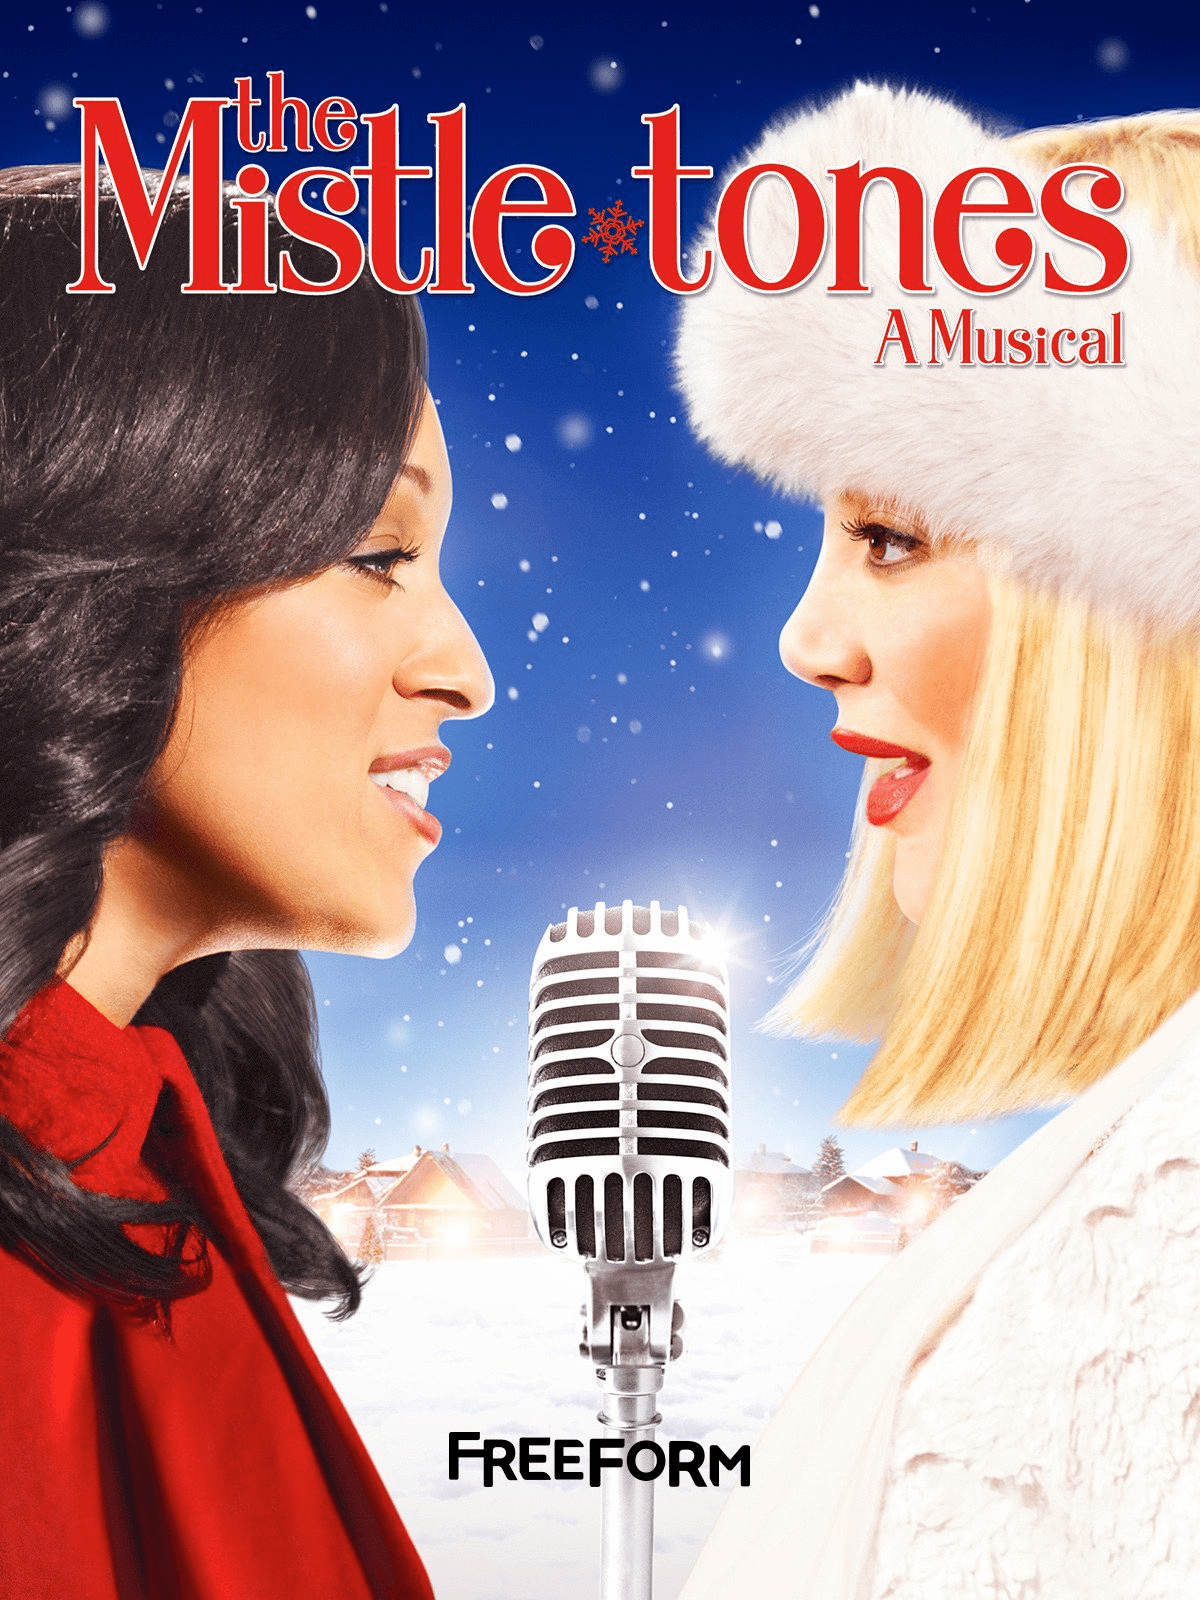 The Mistle-Tones 2012 on DVD